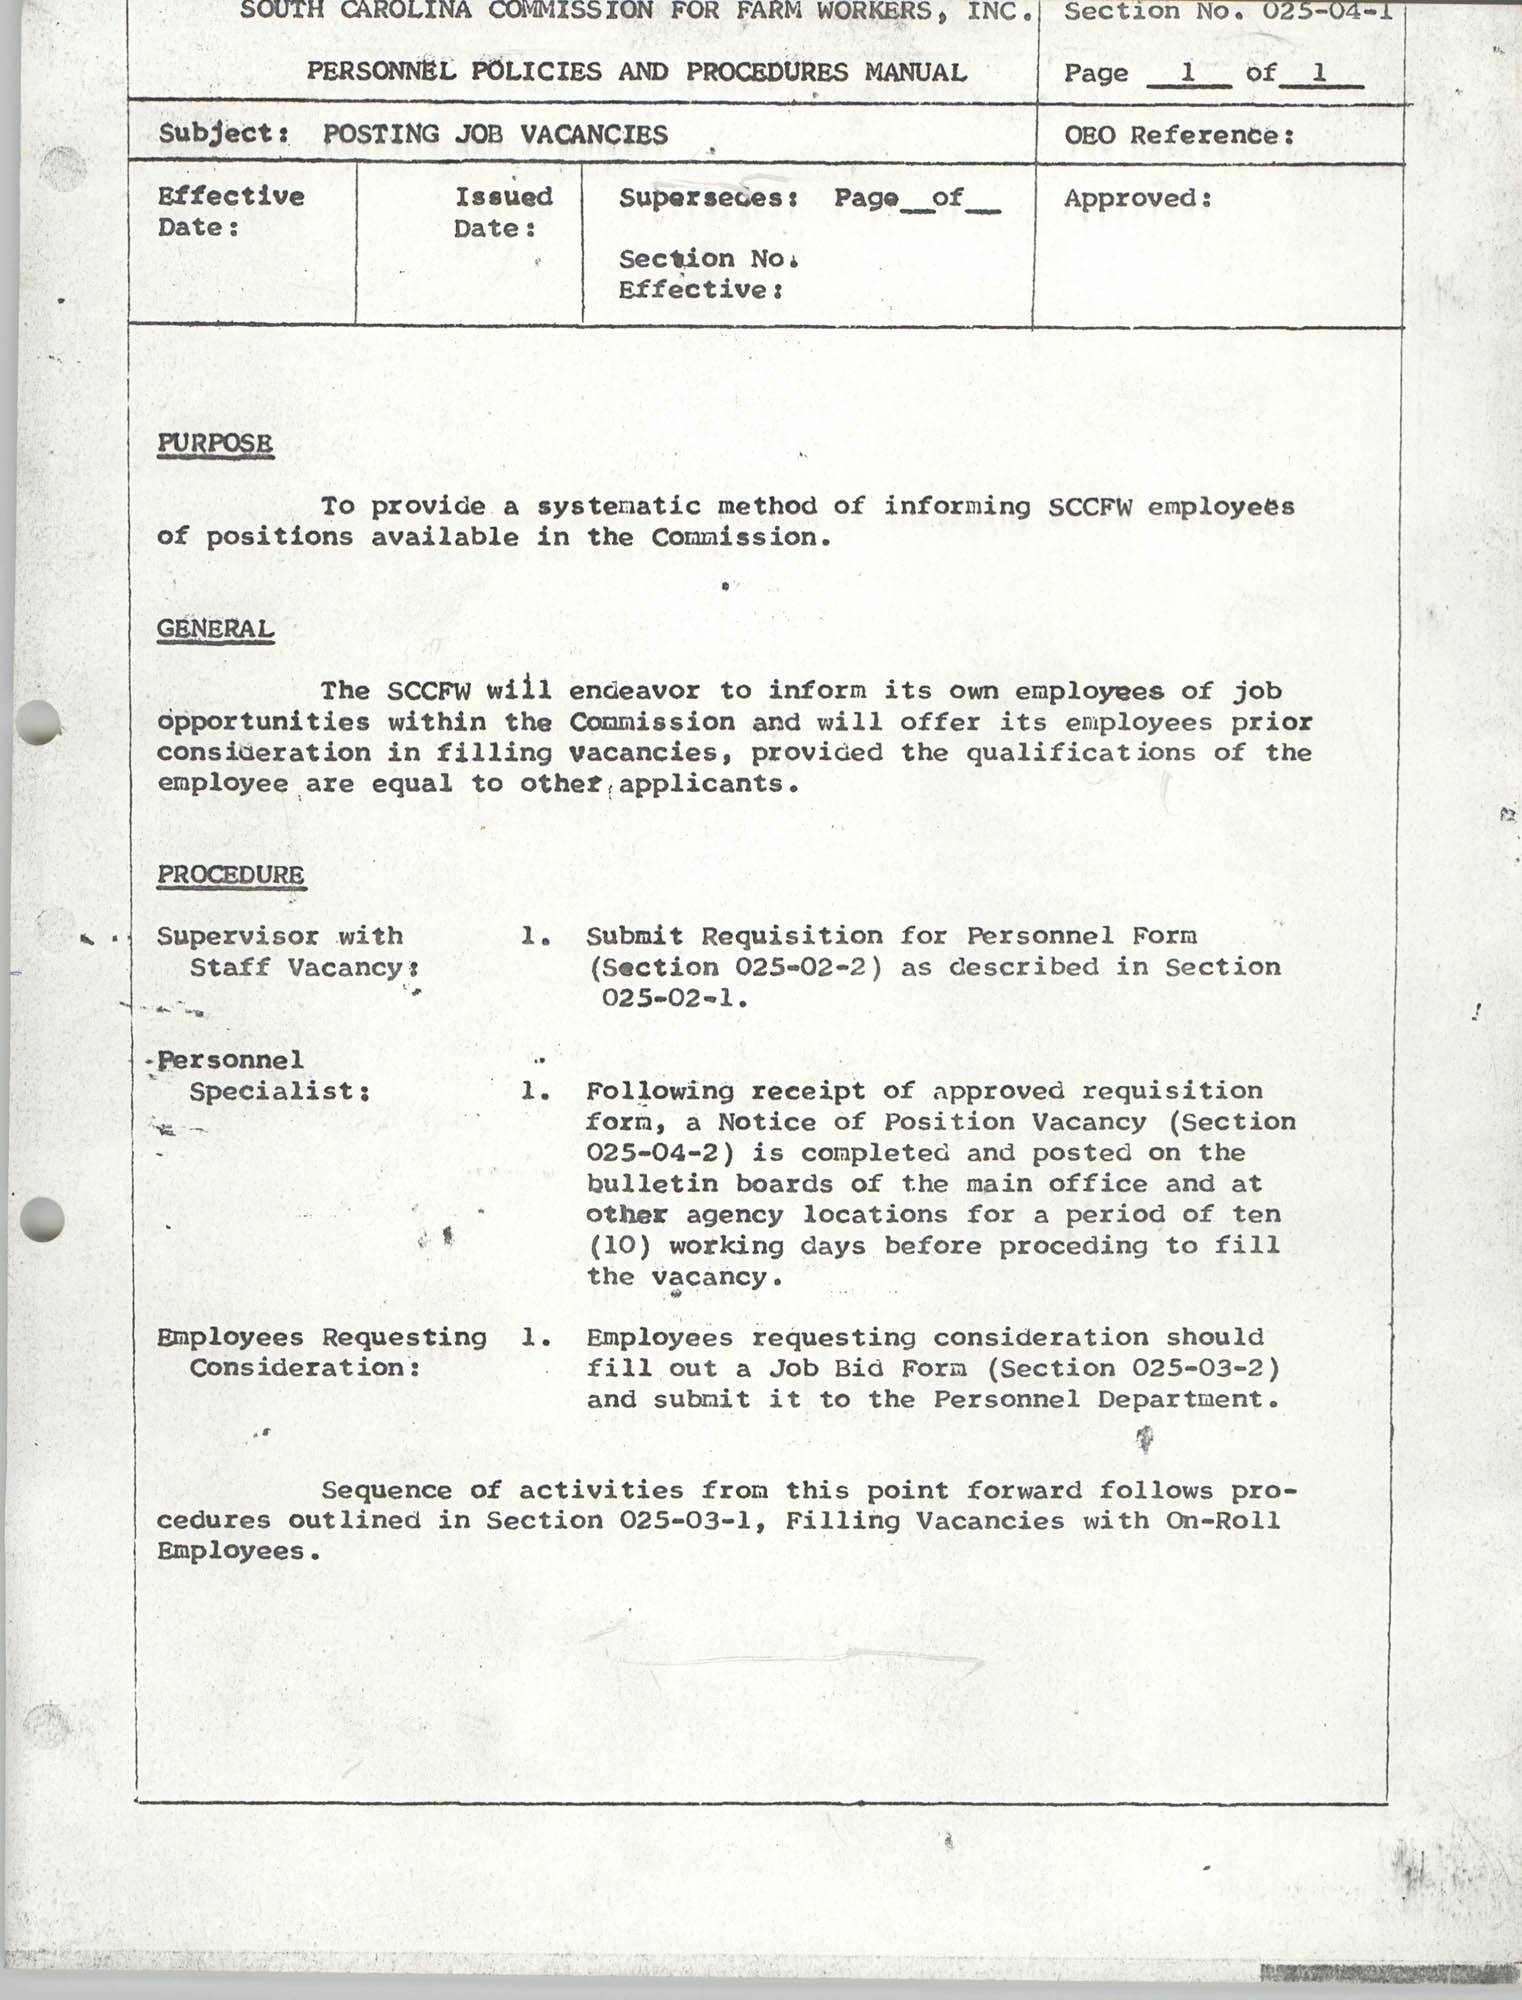 Personnel Policies and Procedures Manual, Section No. 025-04-1